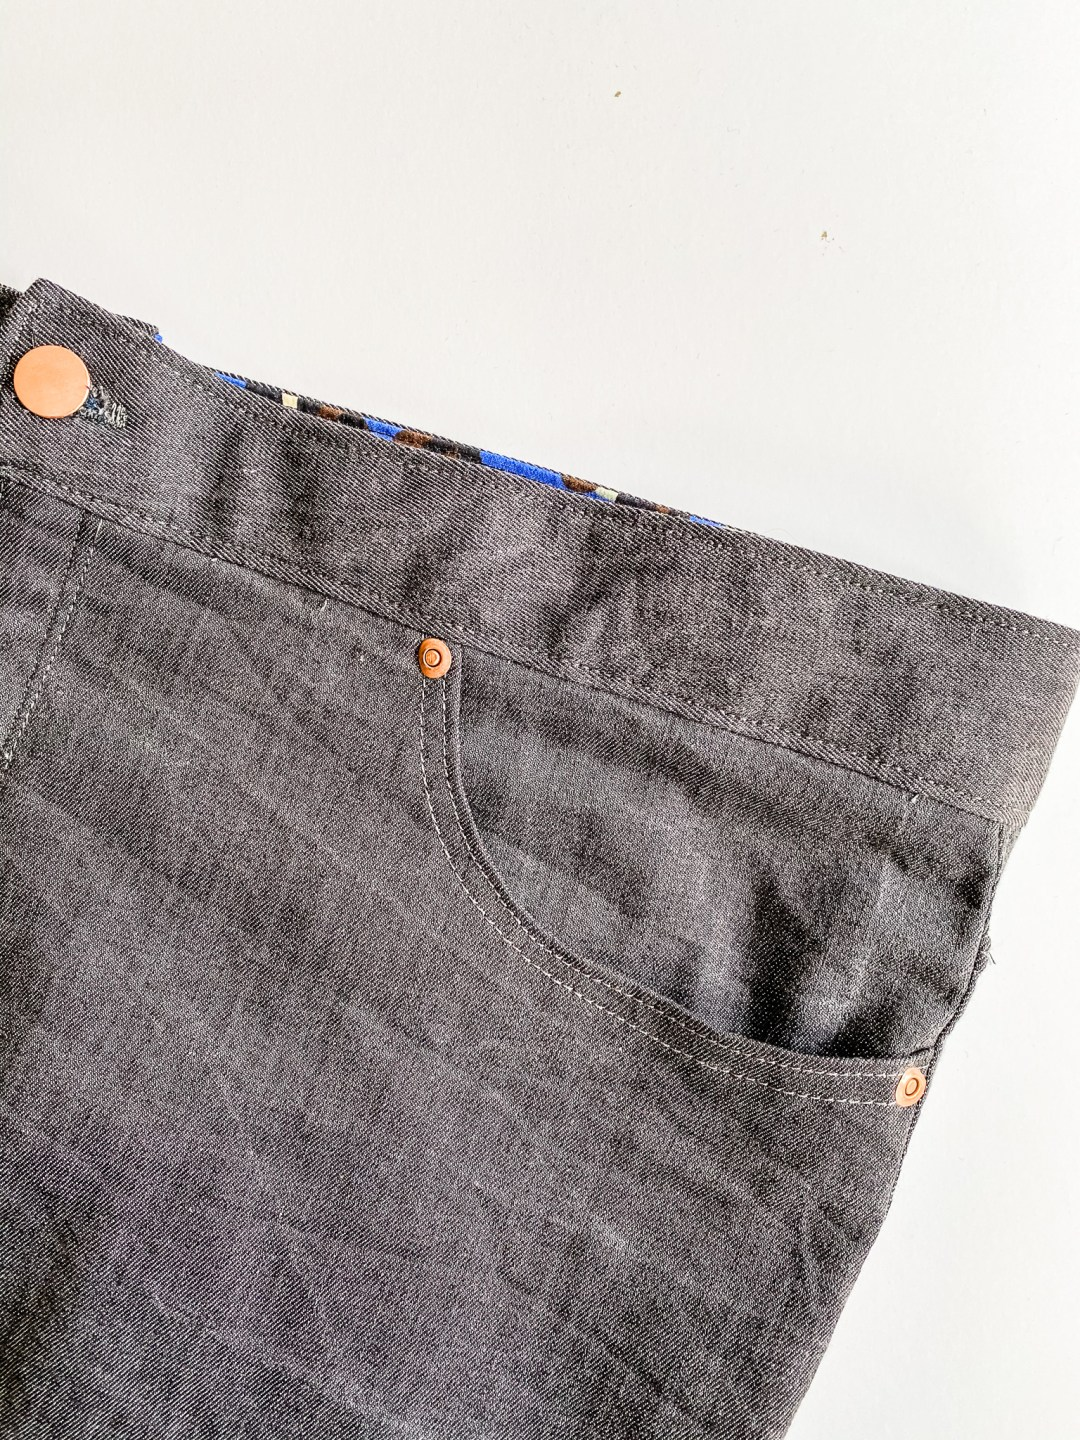 Ginger Jeans by Closet Core